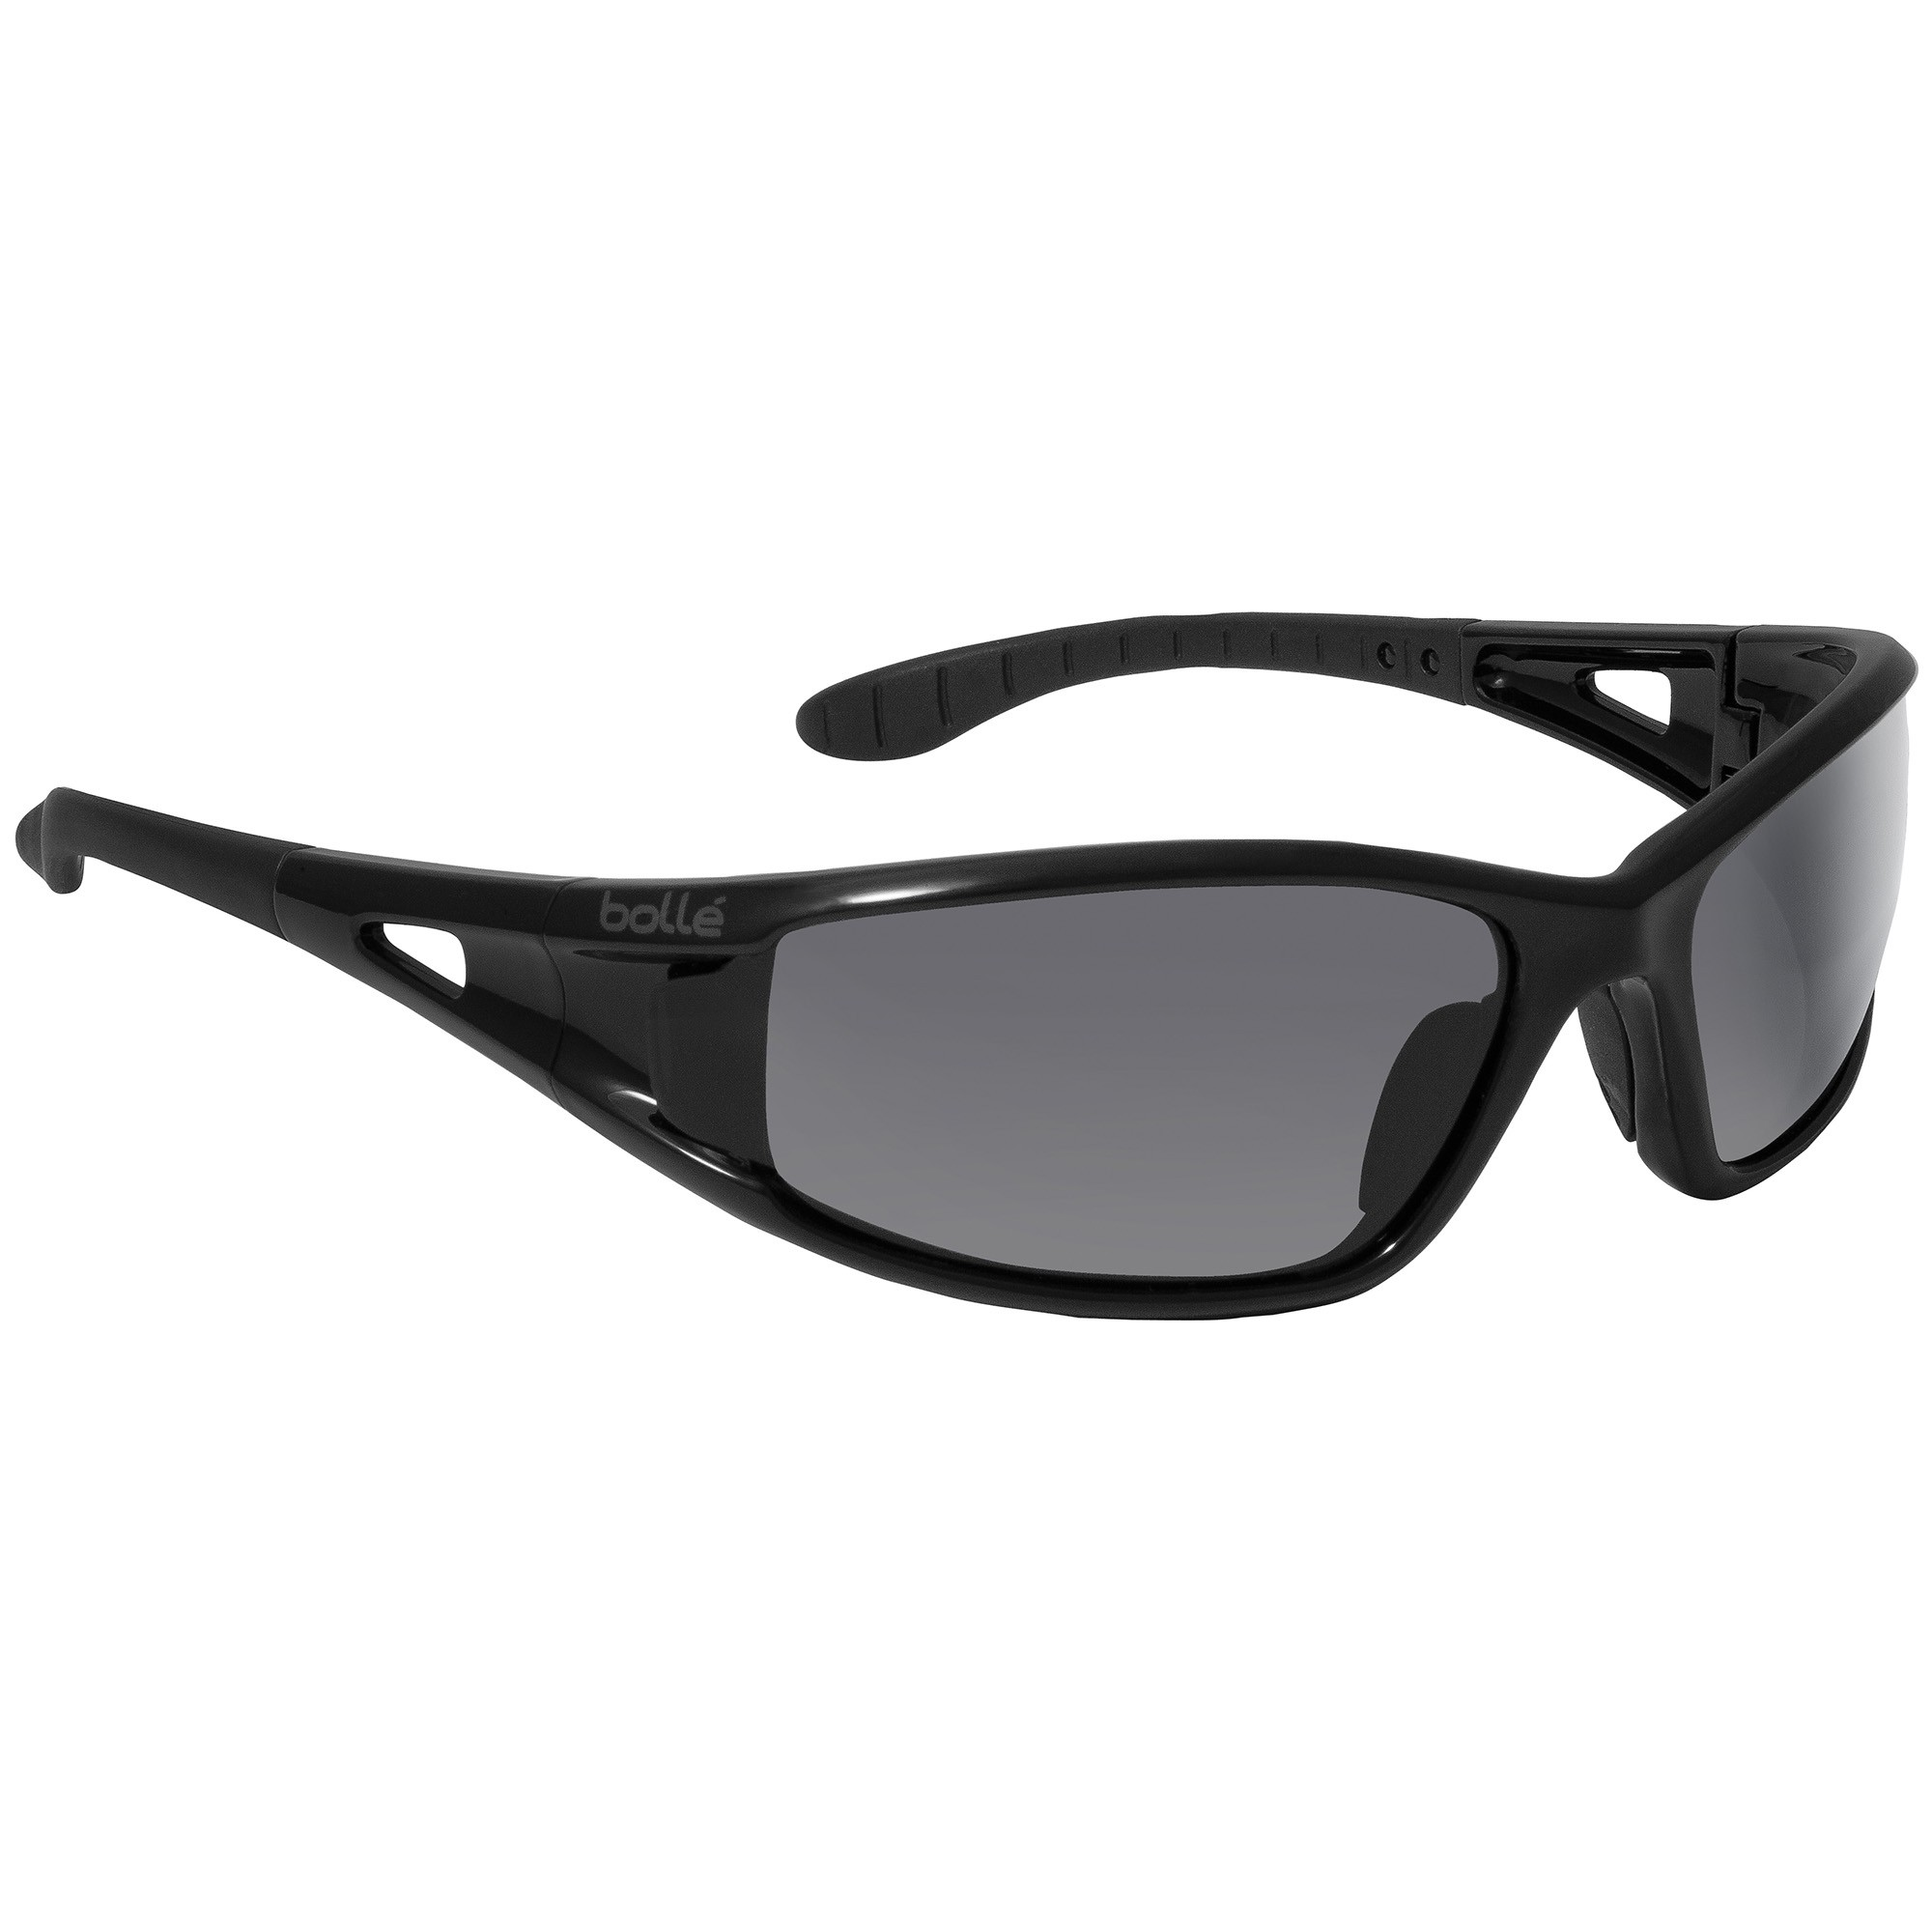 9b12994589 Bolle 40052 Lowrider Safety Glasses - Black Temples - Smoke Anti-Fog Lens